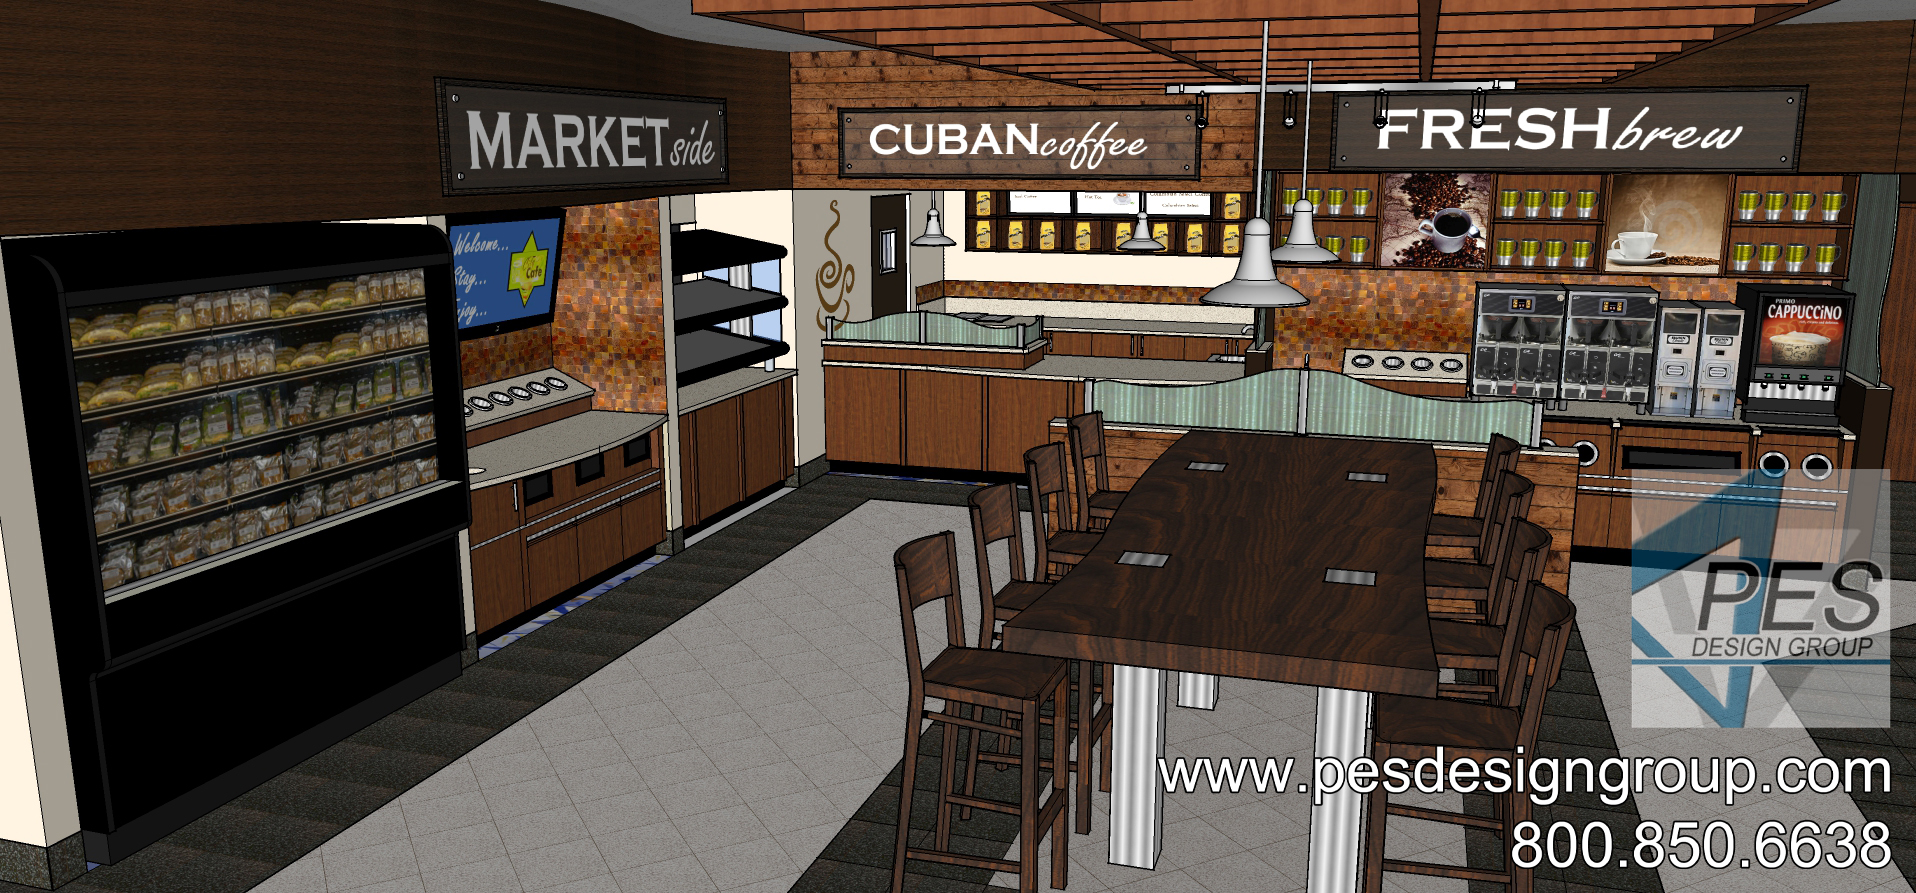 A concept rendering of the foodservice area, Cuban coffee and Fresh Brew counters at a Shell gas station and c-store in Coconut Creek, Florida.